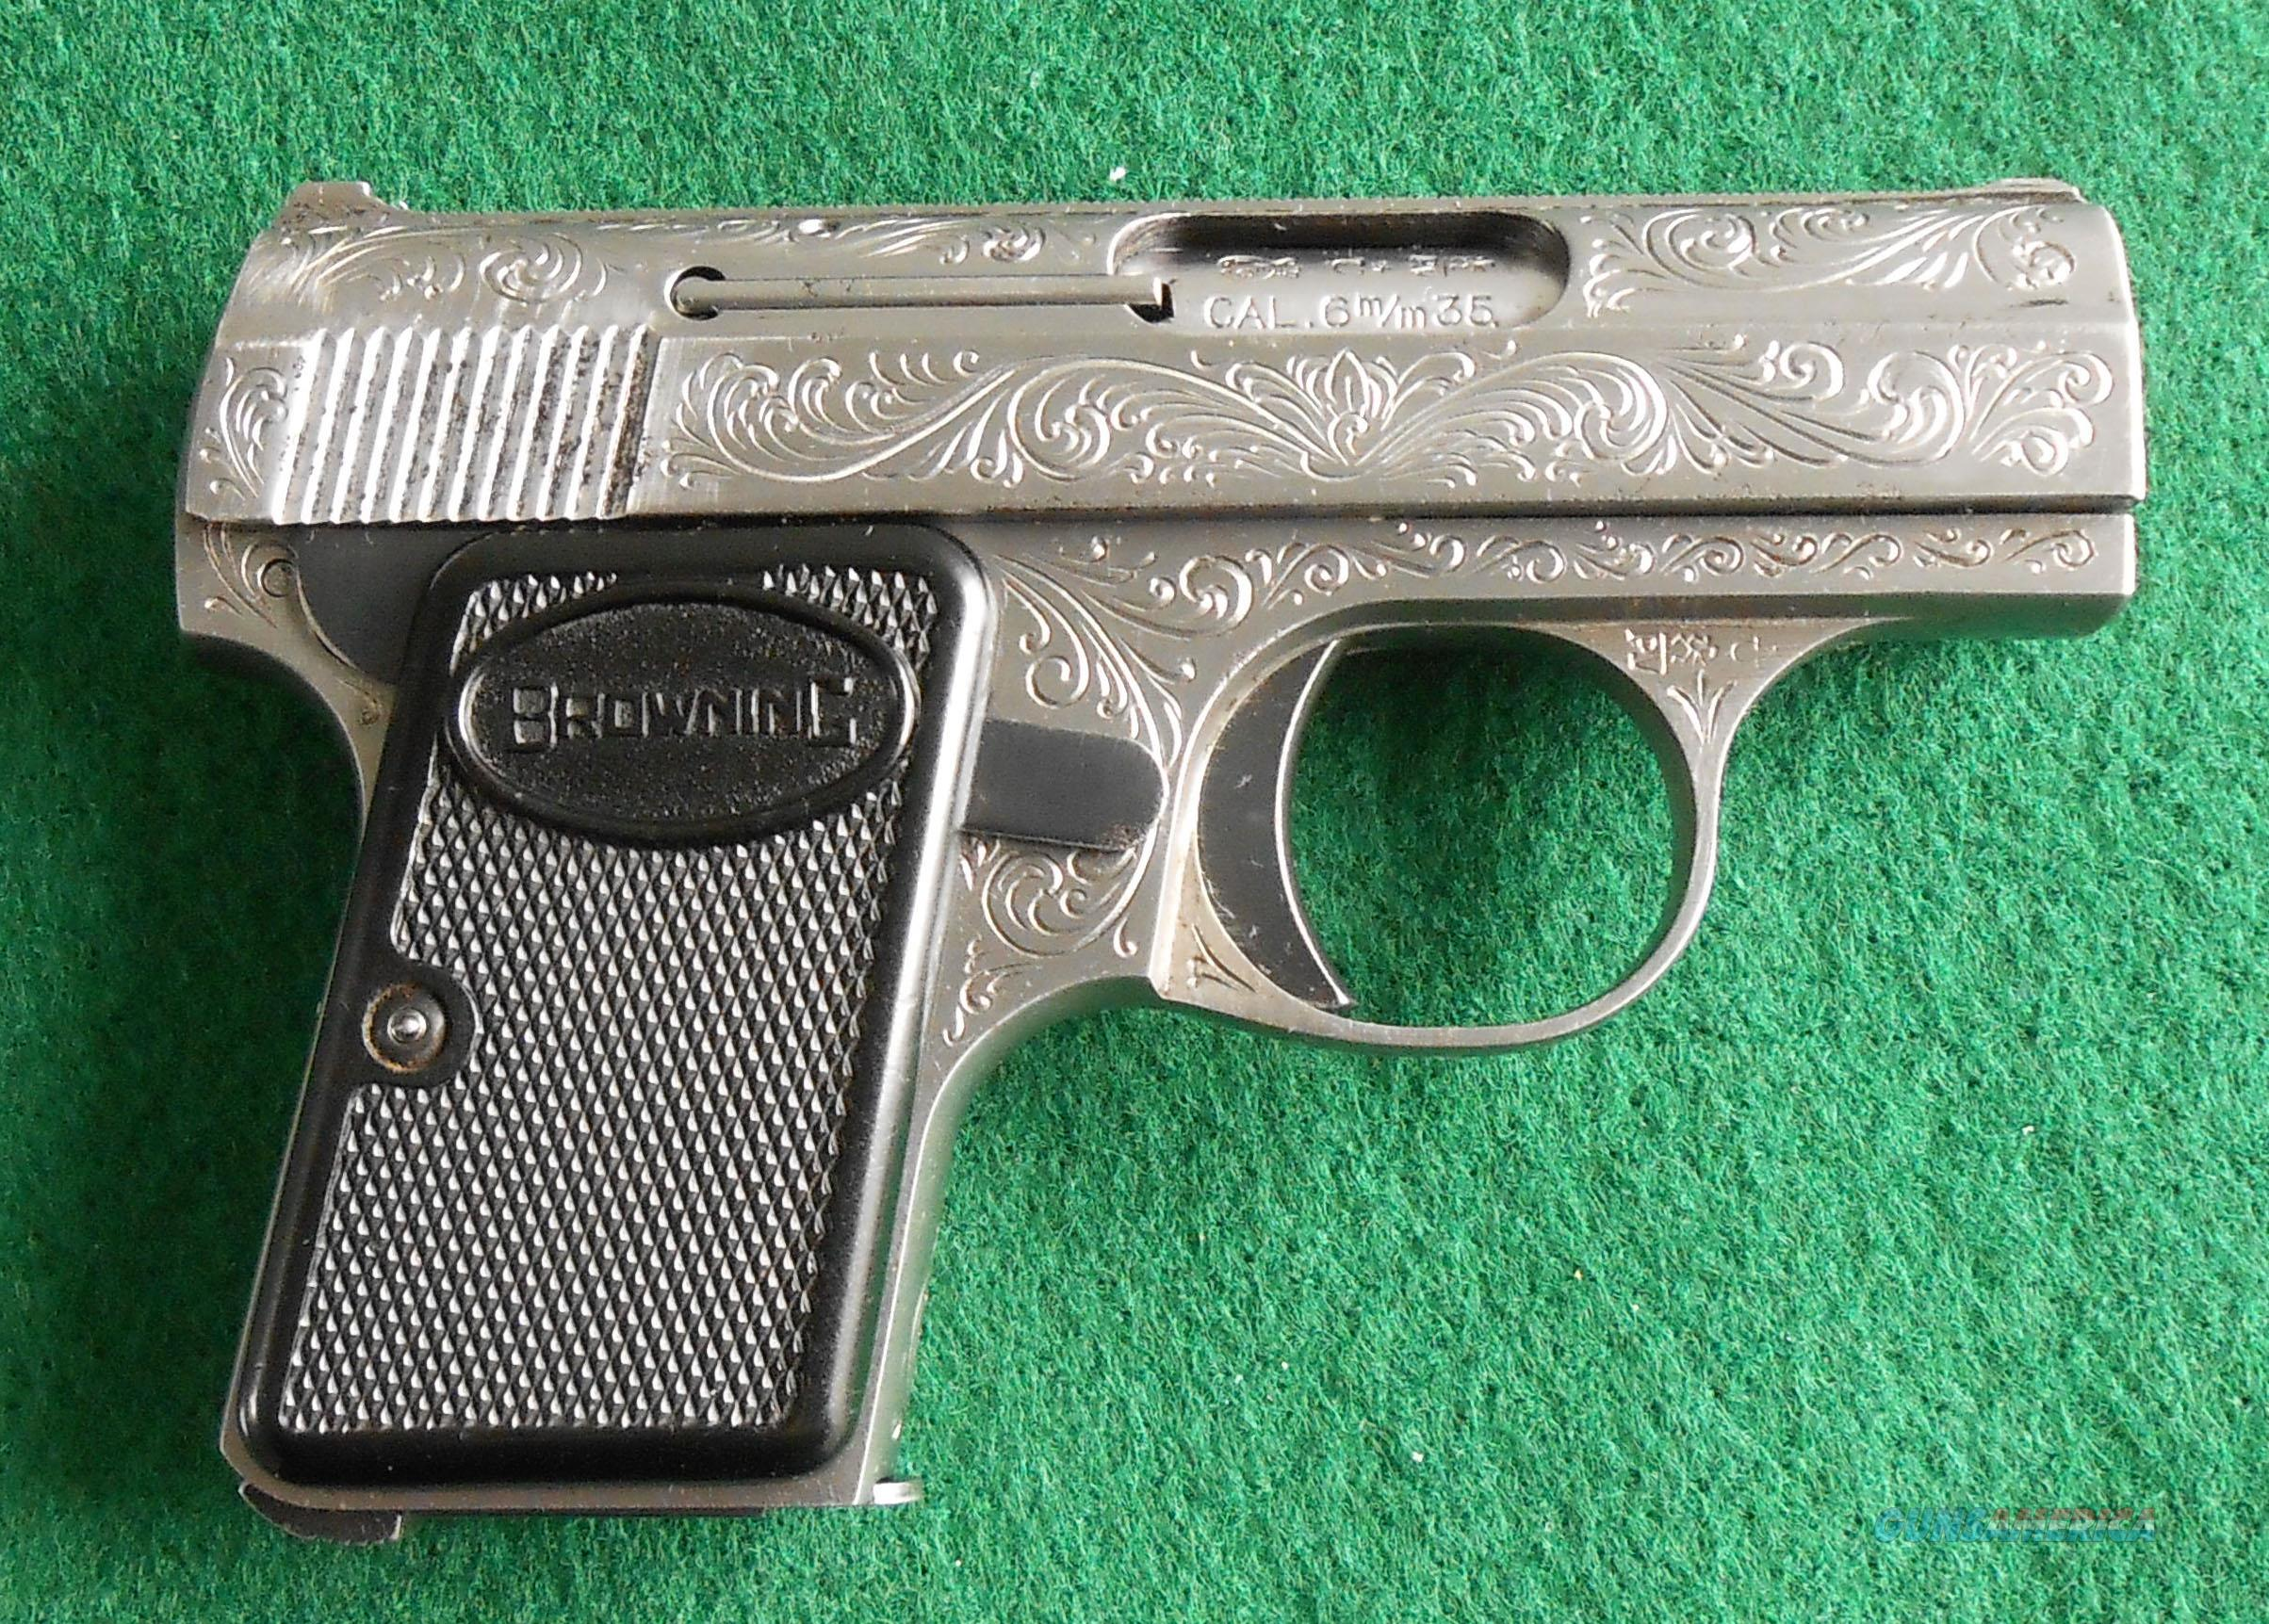 BABY BROWNING - ENGRAVED  Guns > Pistols > Browning Pistols > Baby Browning